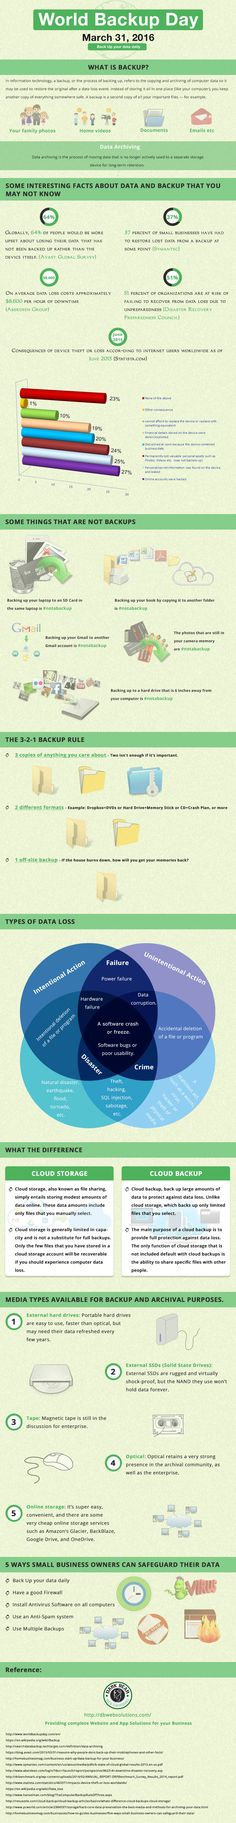 Get an Insight on Backup this World Backup Day - 31st March 2016 (Infographic)